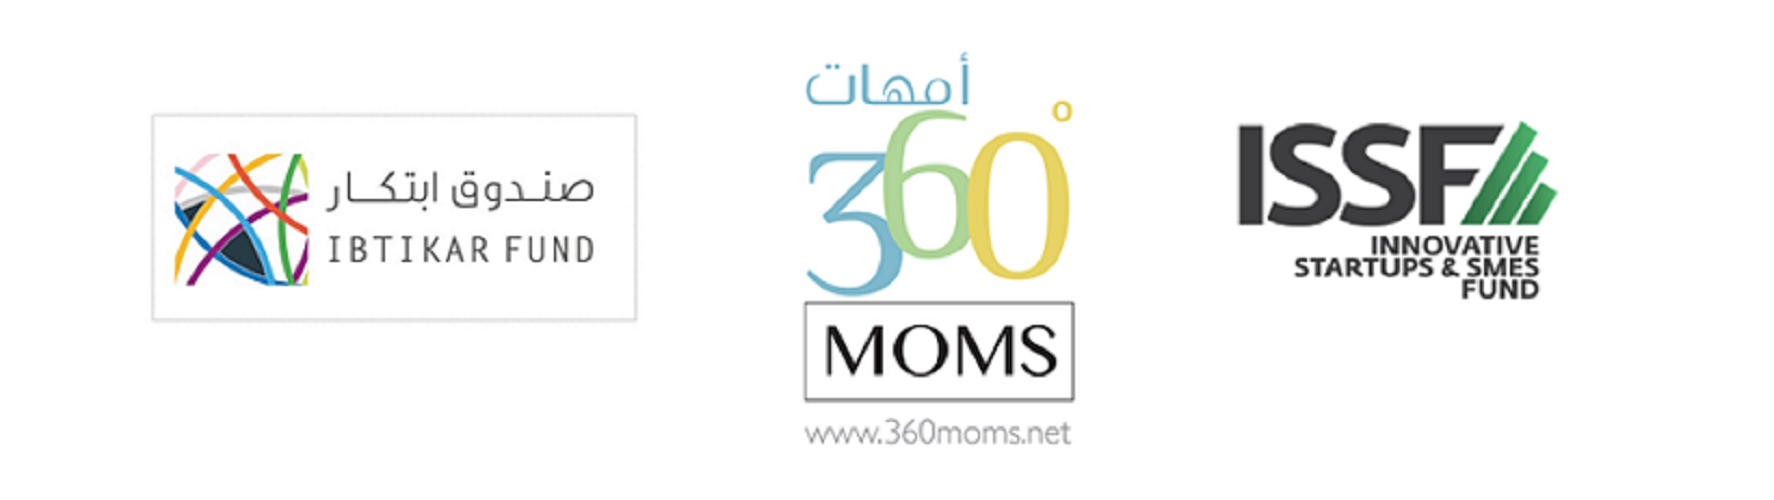 360Moms raises fresh funds